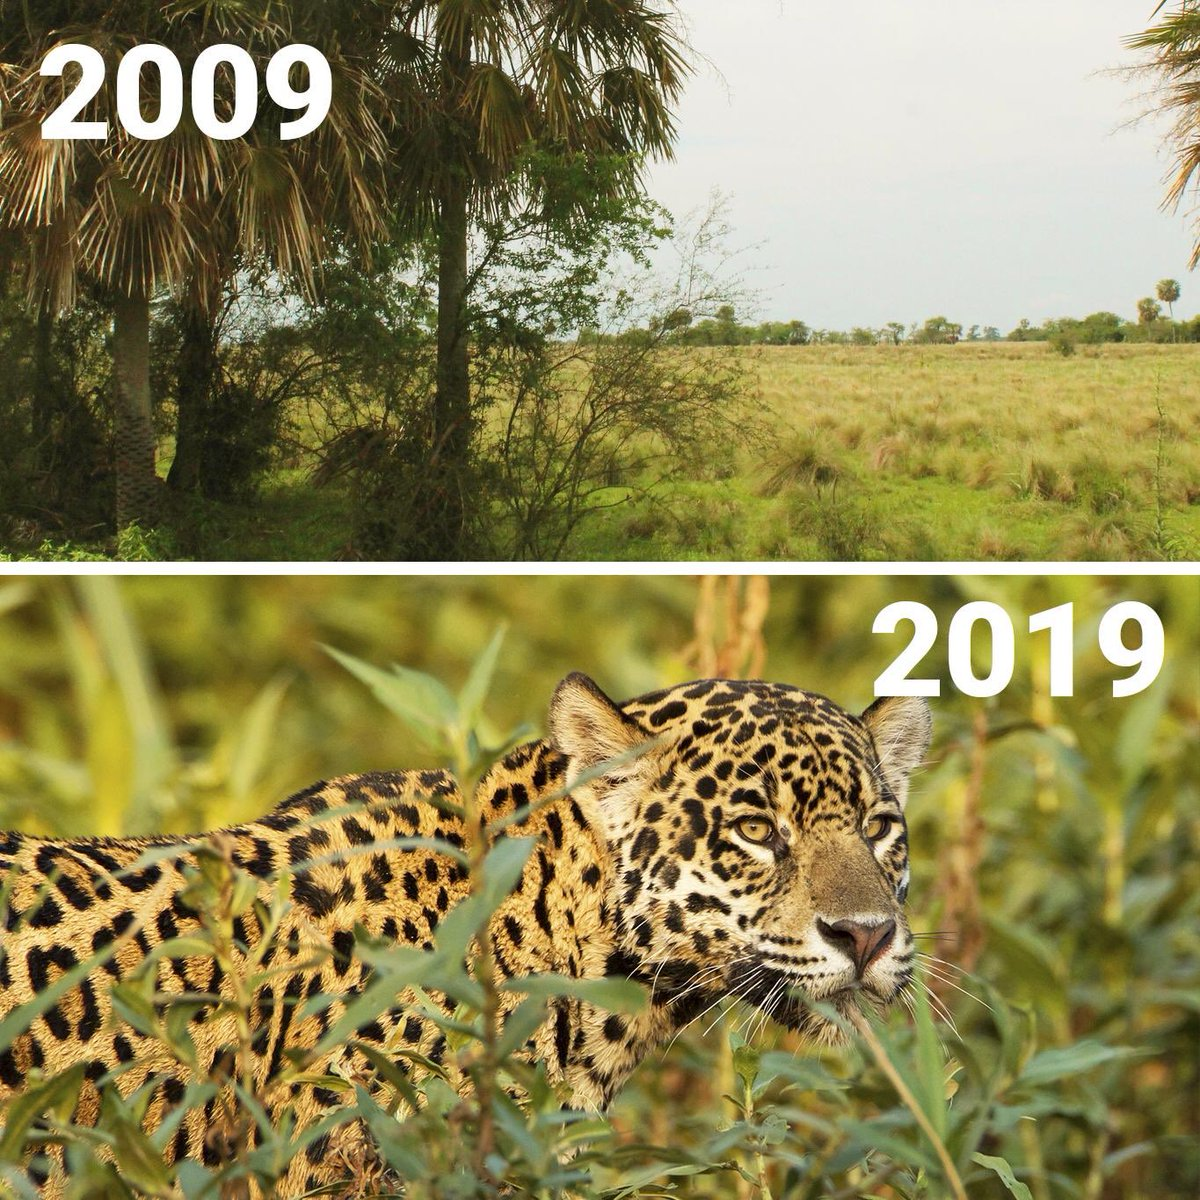 #10YearChallenge 10 years and 2 cubs later, the jaguar has made a comeback in Iberá National Park 🏞 with the help of @TompkinsConserv  #WildForLife